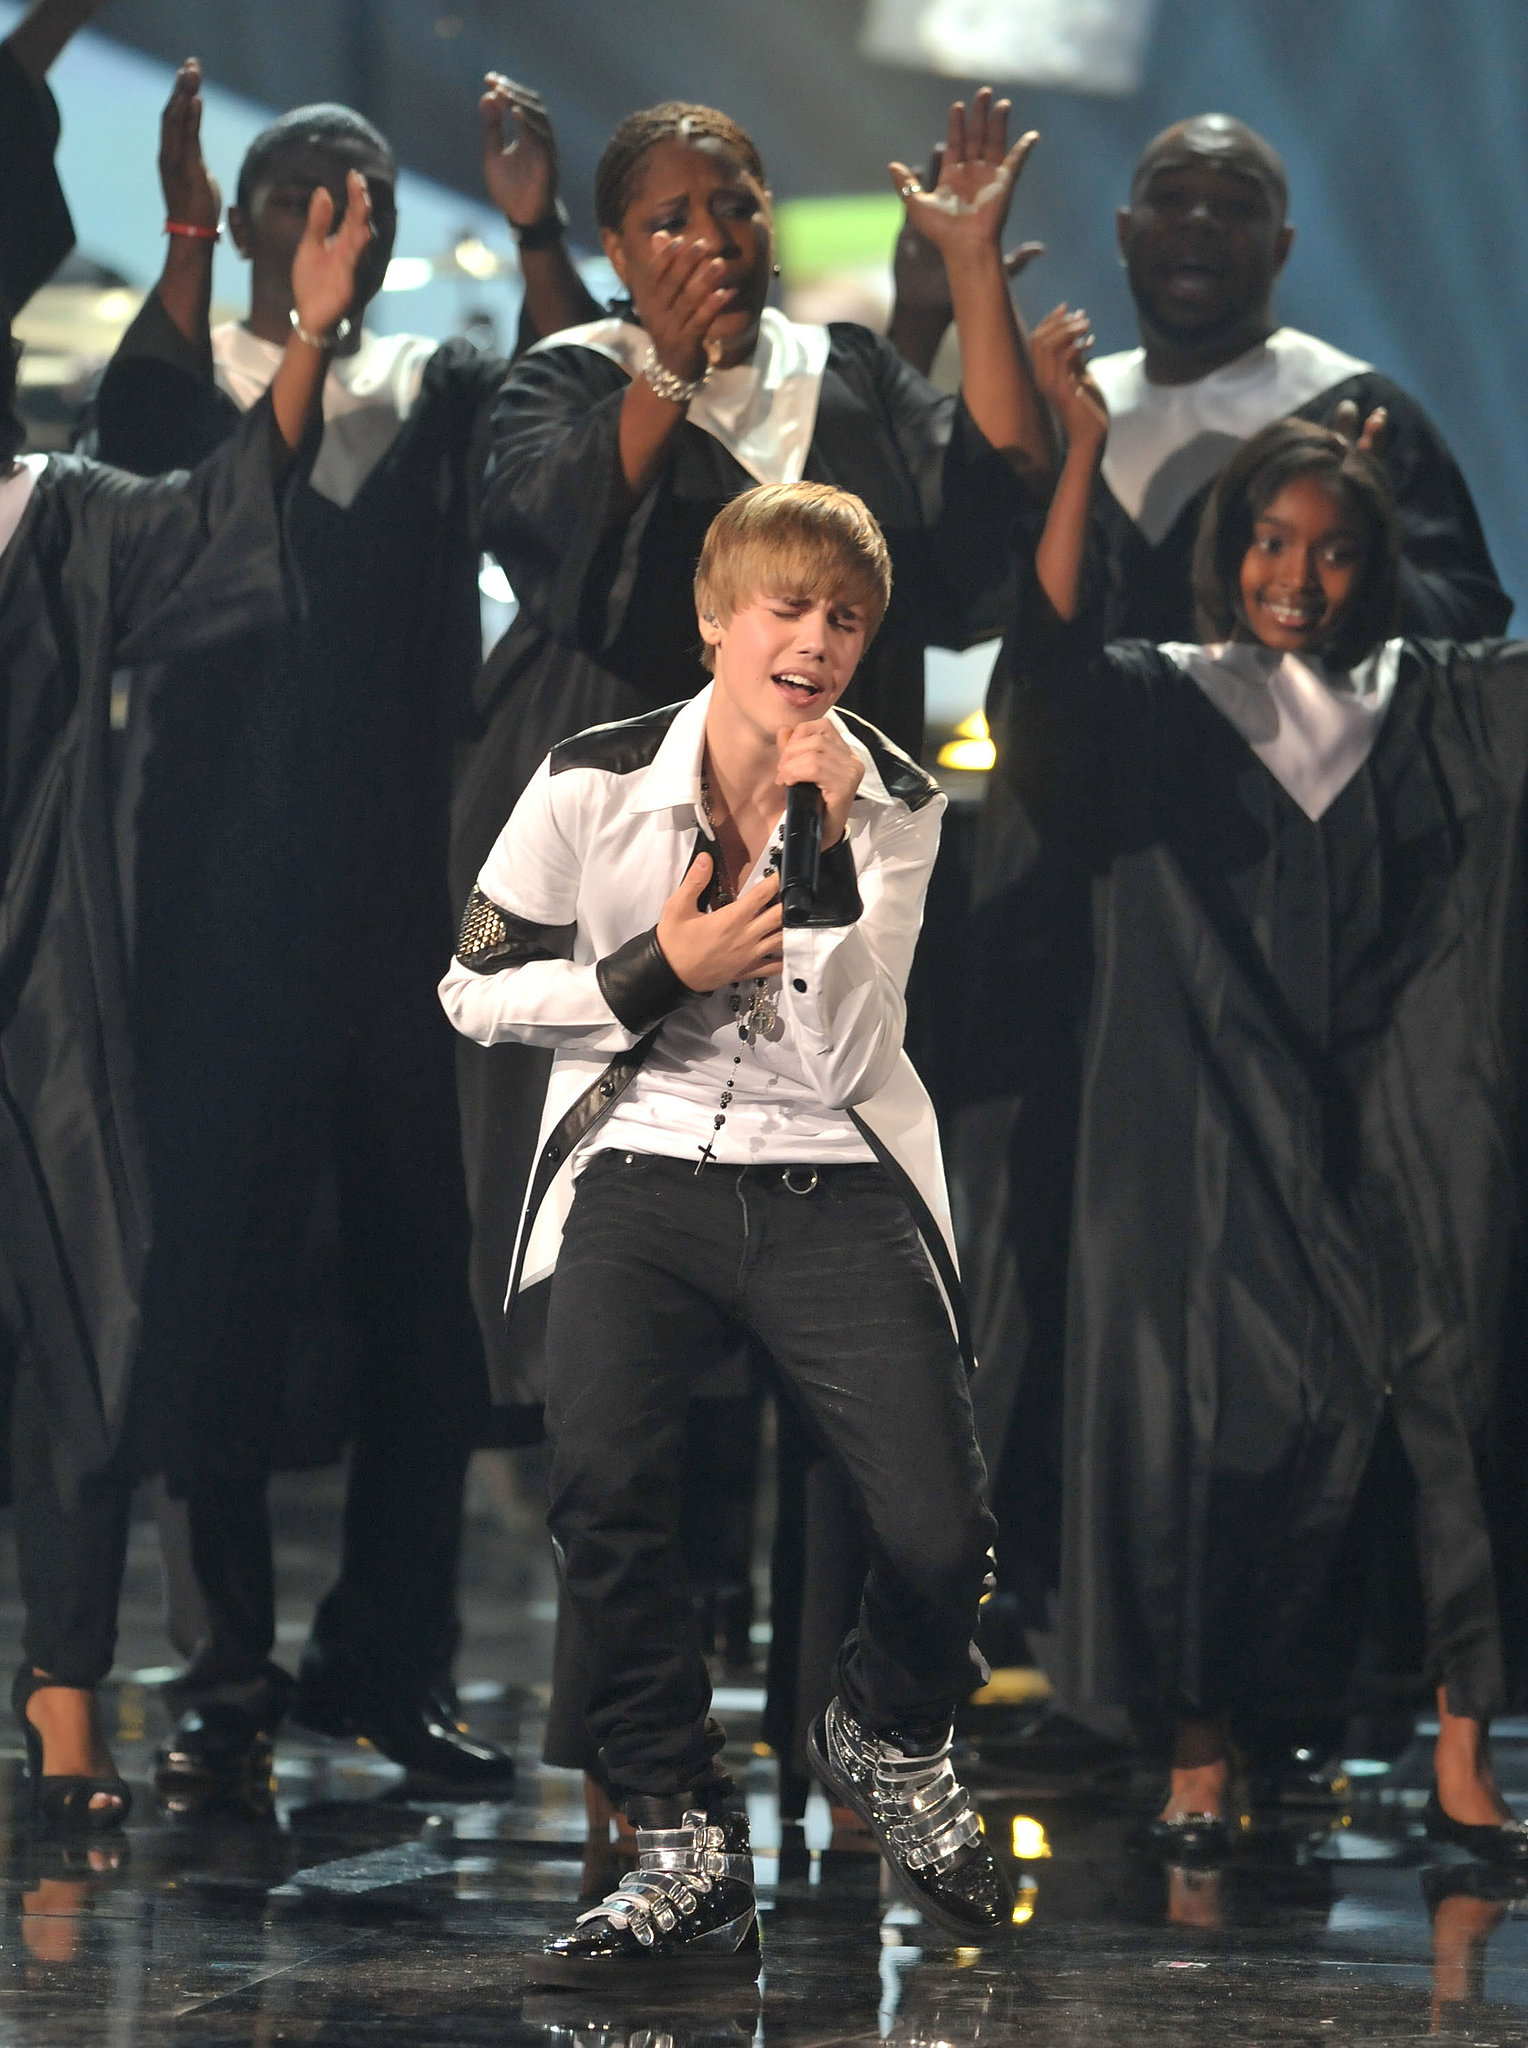 Justin Bieber performed with a gospel choir in 2010.